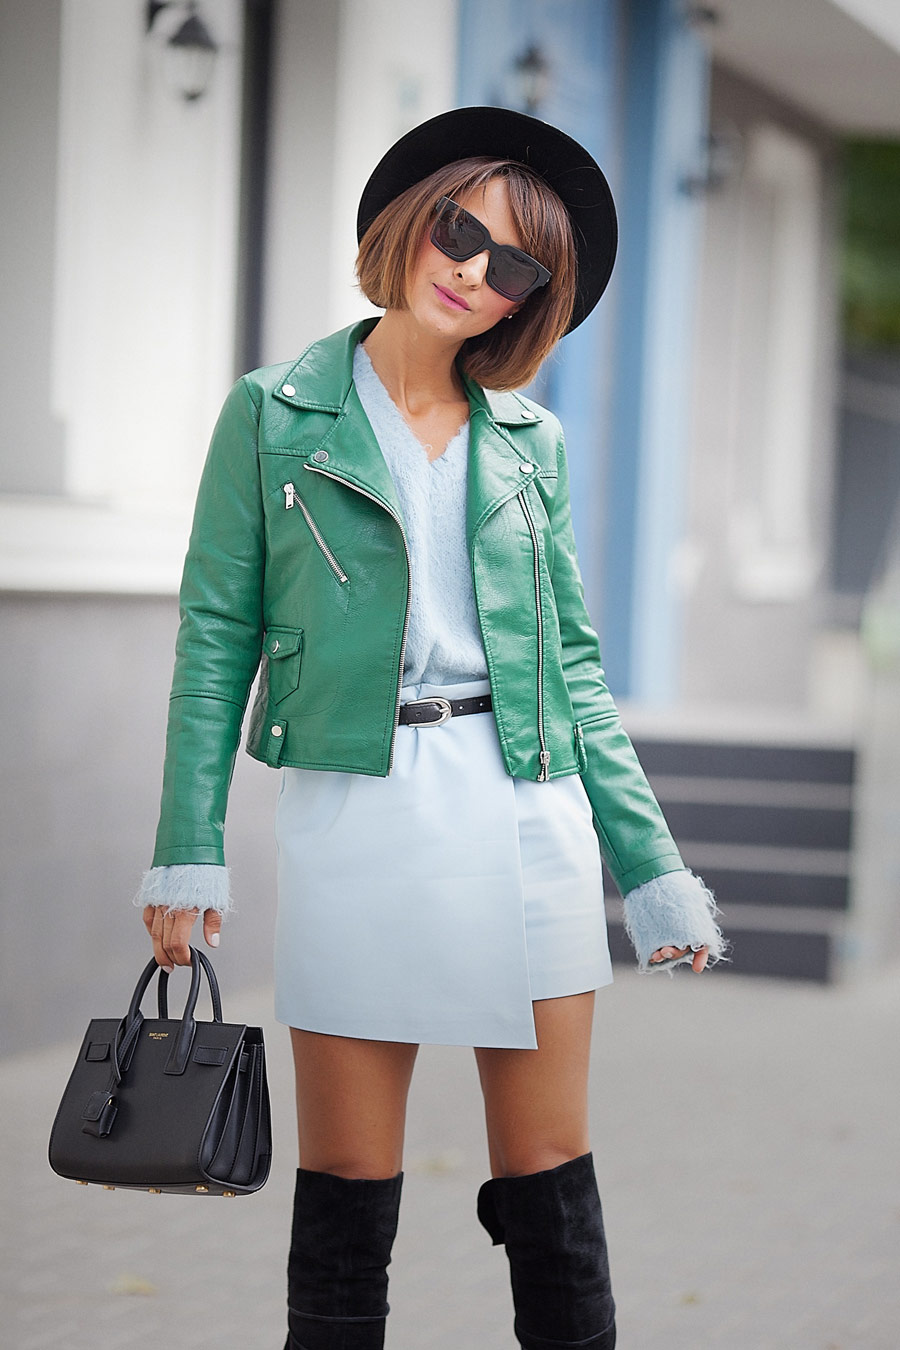 fall outfit ideas, biker jacket outfit, mango biker jacket, how to wear green color, green leather biker jacket outfit,